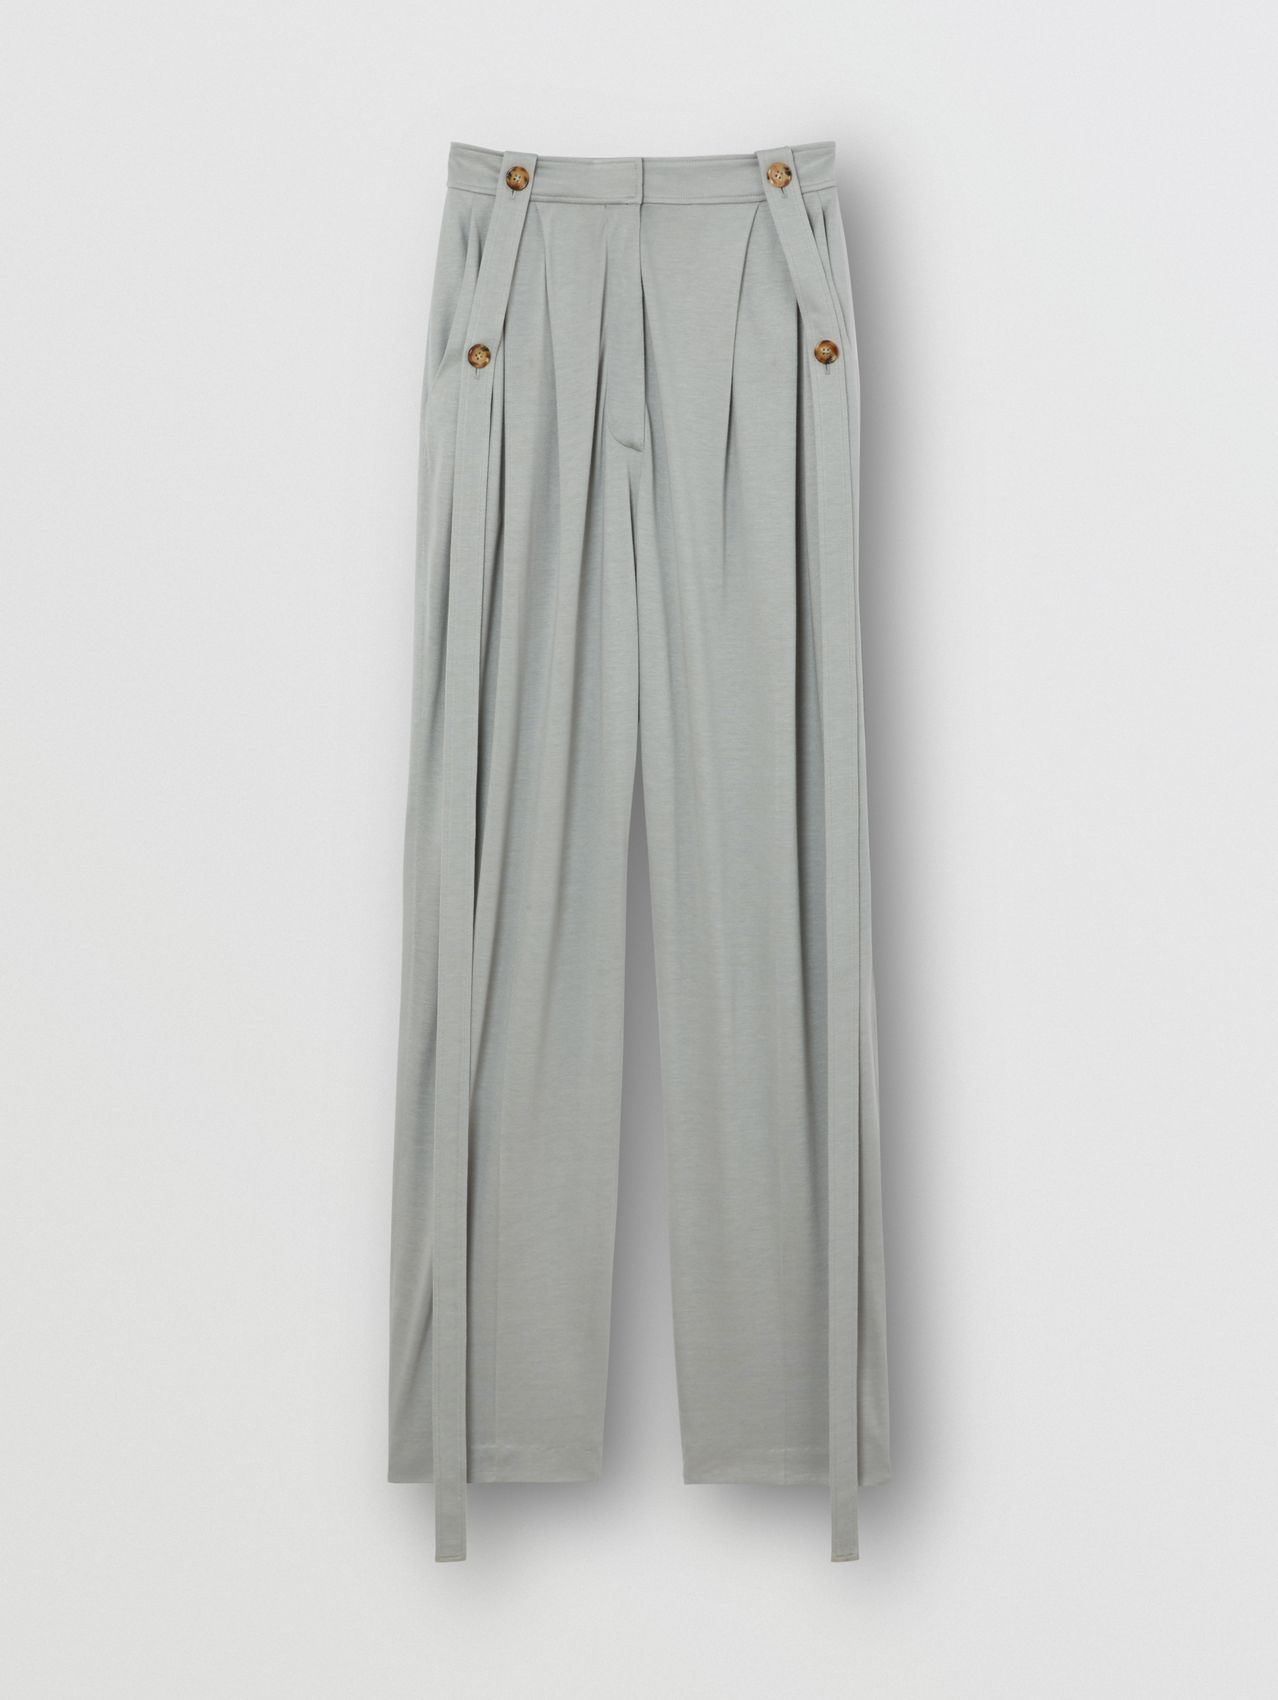 Strap Detail Jersey Tailored Trousers in Heather Melange